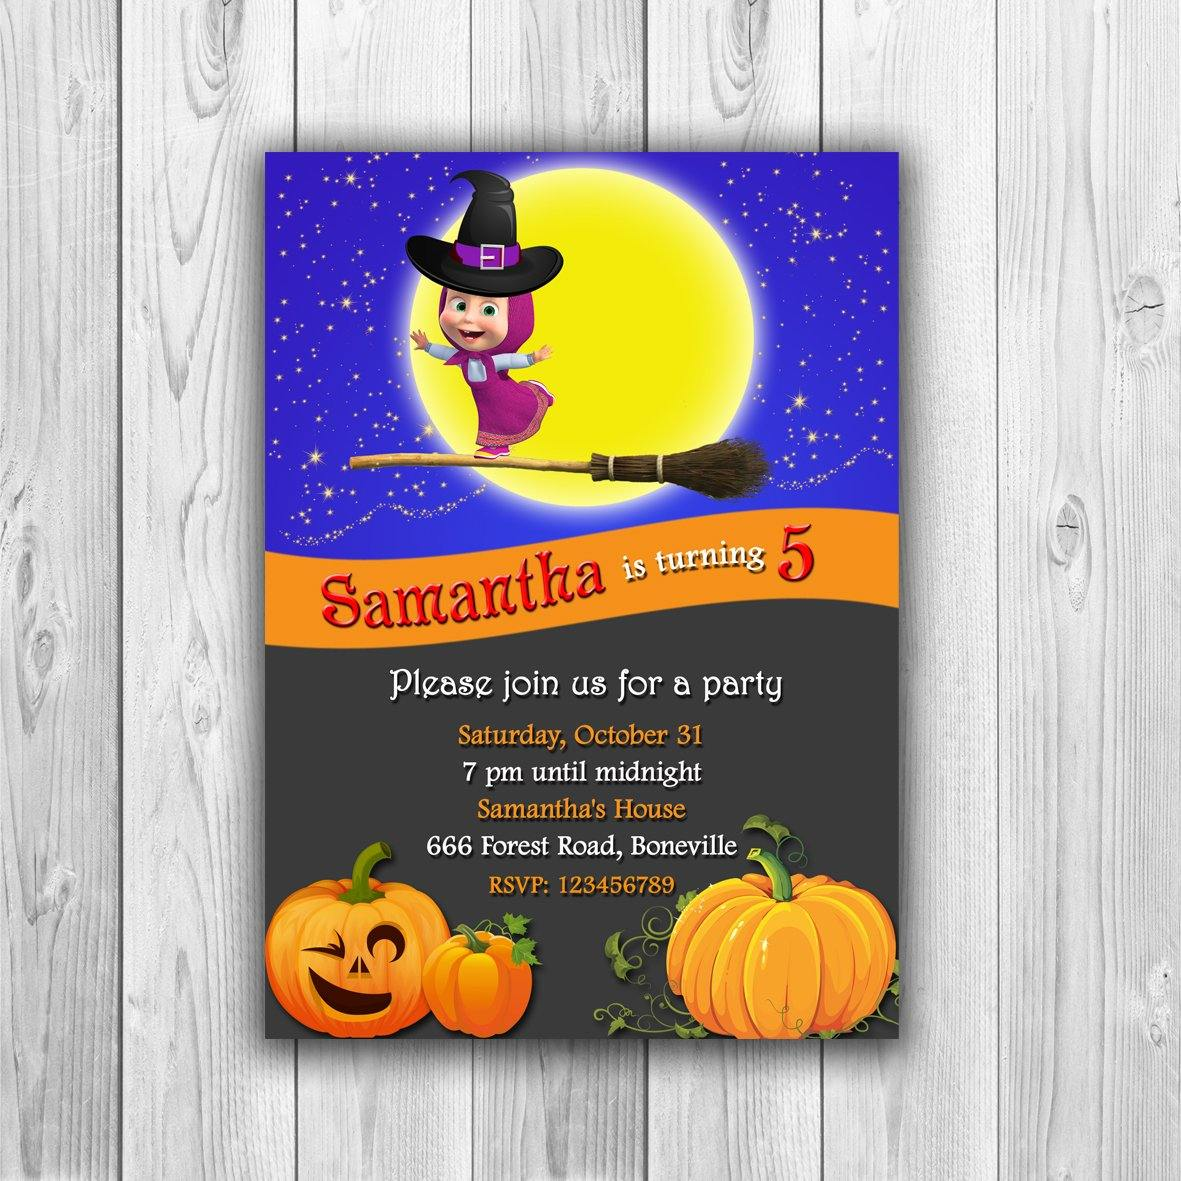 Halloween Birthday Invitation, Halloween Party Invitation, Halloween Invitation, Masha and the Bear Halloween Invitation - ONLY FILE - mariiadesignshop